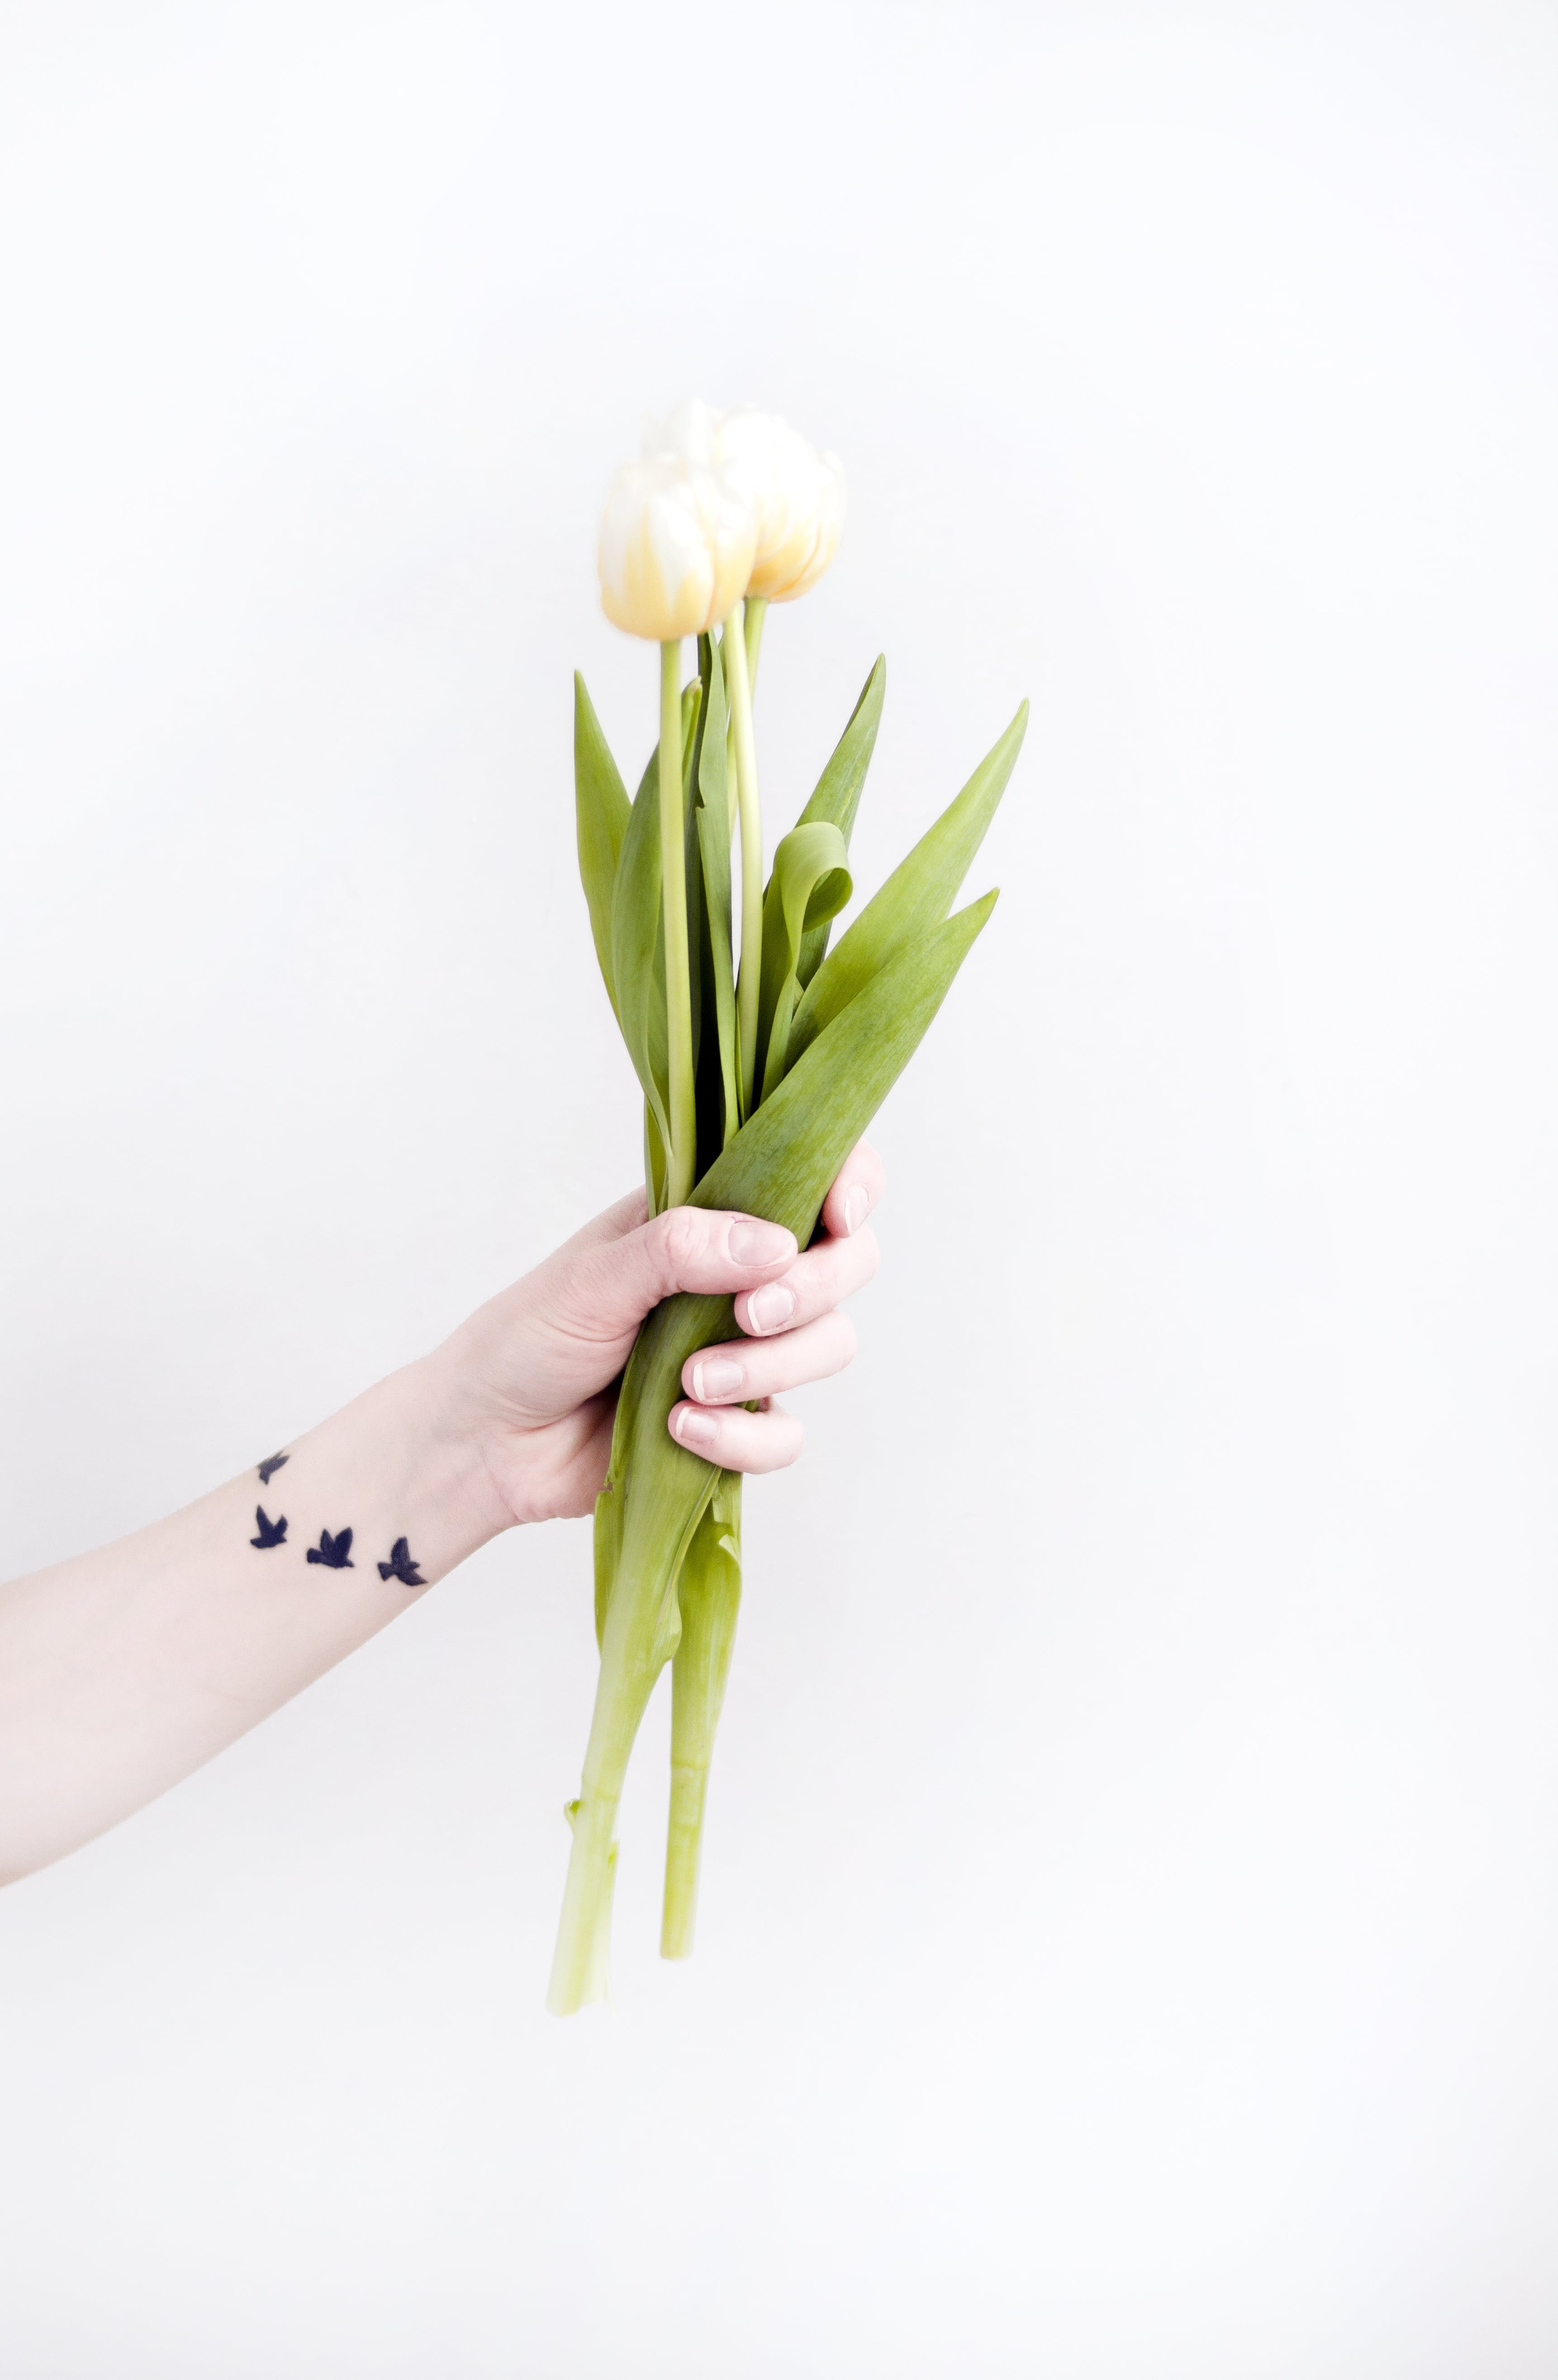 Person Holding Tulip Flowers